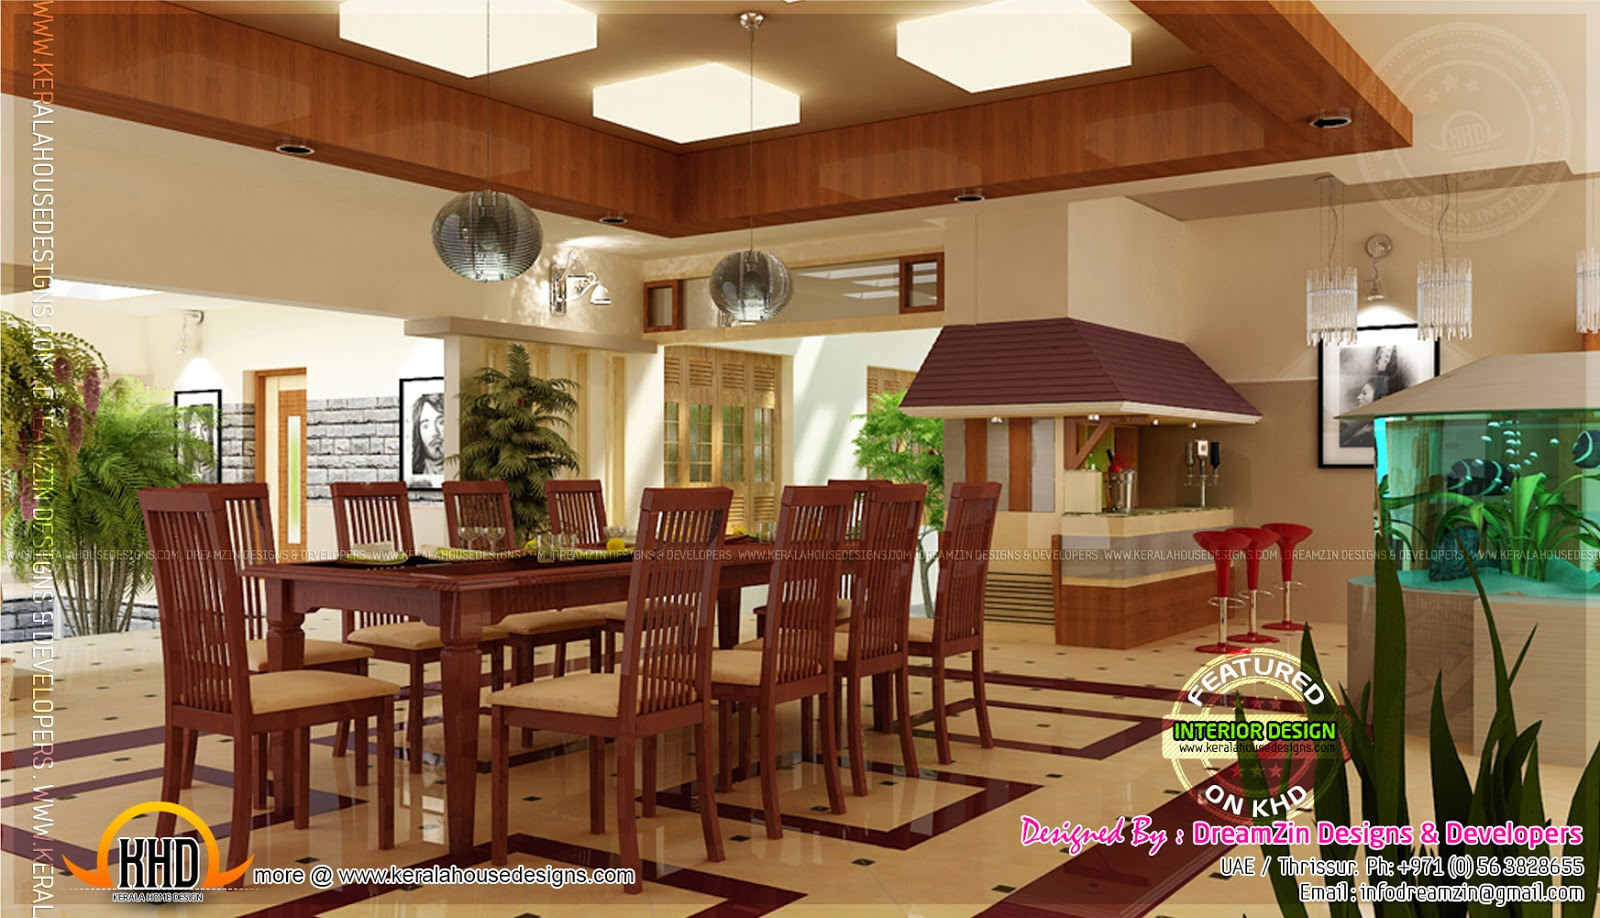 Interior designs by dreamzin designs uae and kerala for Kerala homes interior designs